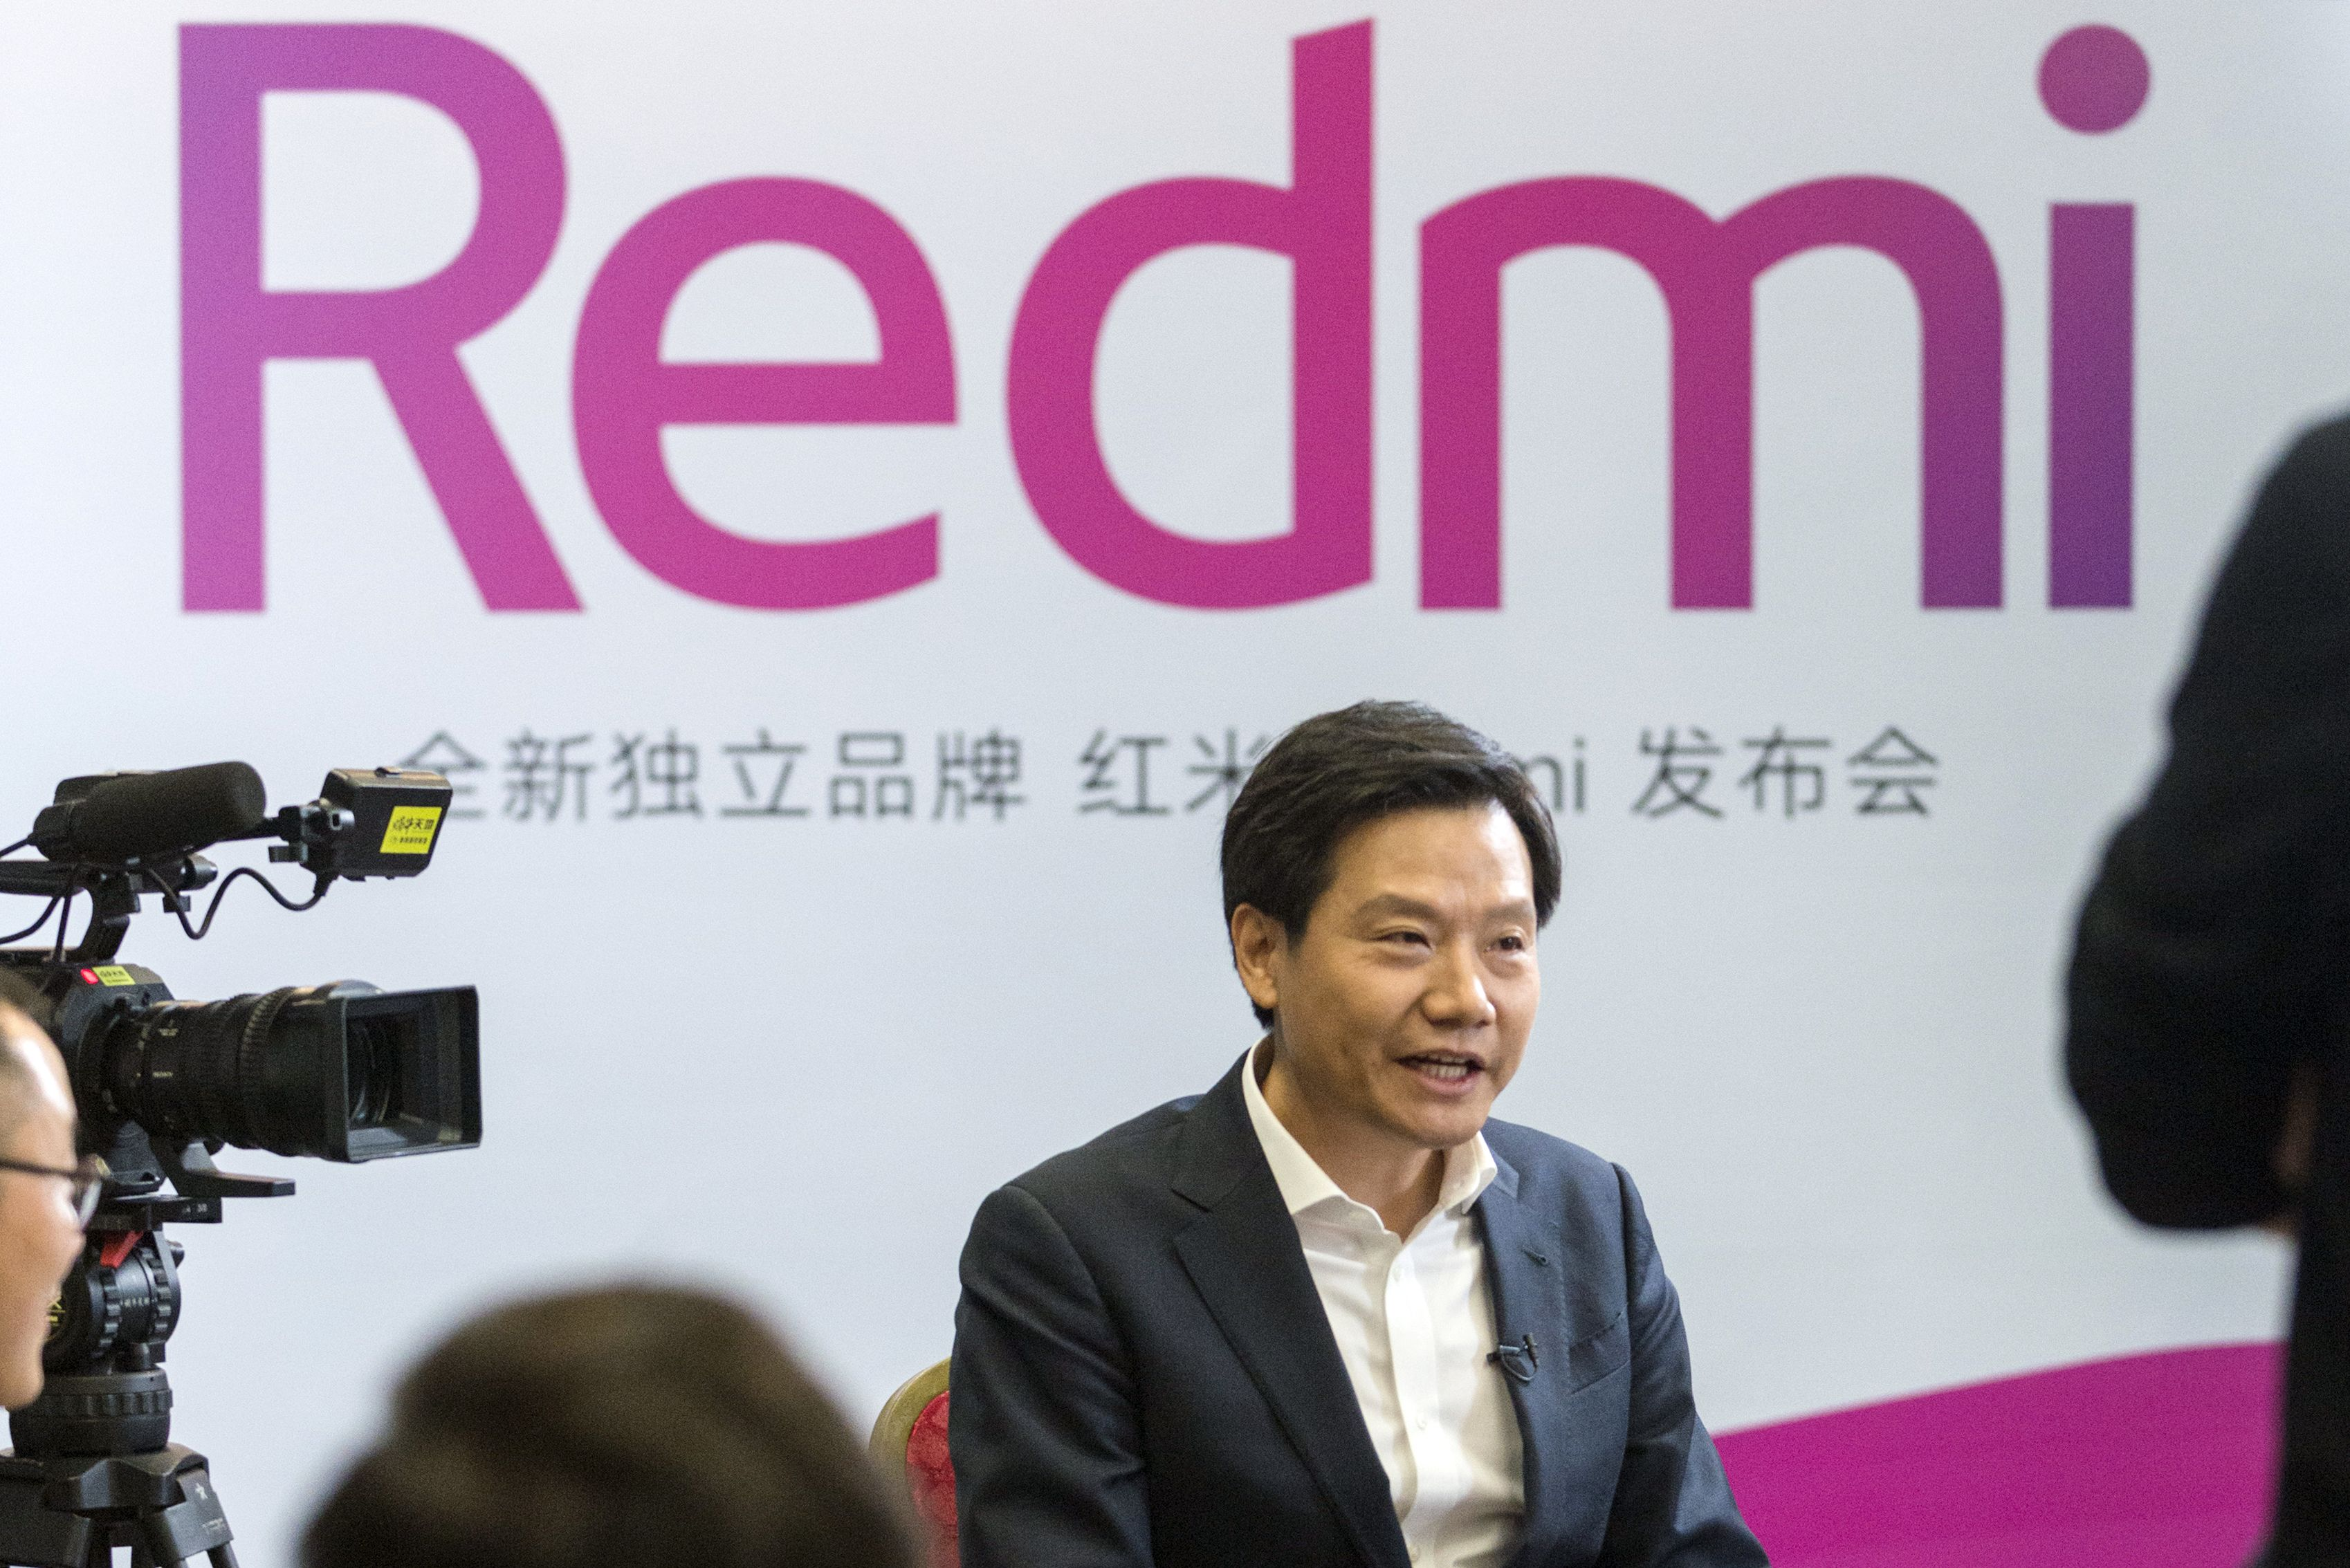 Lei Jun, chief executive officer of Xiaomi Corp., speaks during a Bloomberg Television interview following a product launch for the Redmi Note 7 smartphone in Beijing, China, on Thursday, Jan. 10, 2019. Xiaomi's billionaire co-founder, shrugging off a share slump thatu2019s wiped $6 billion off its market value in just three days, expects the advent of next-generation wireless to energize demand for its smartphones. Photographer: Shawn Koh/Bloomberg